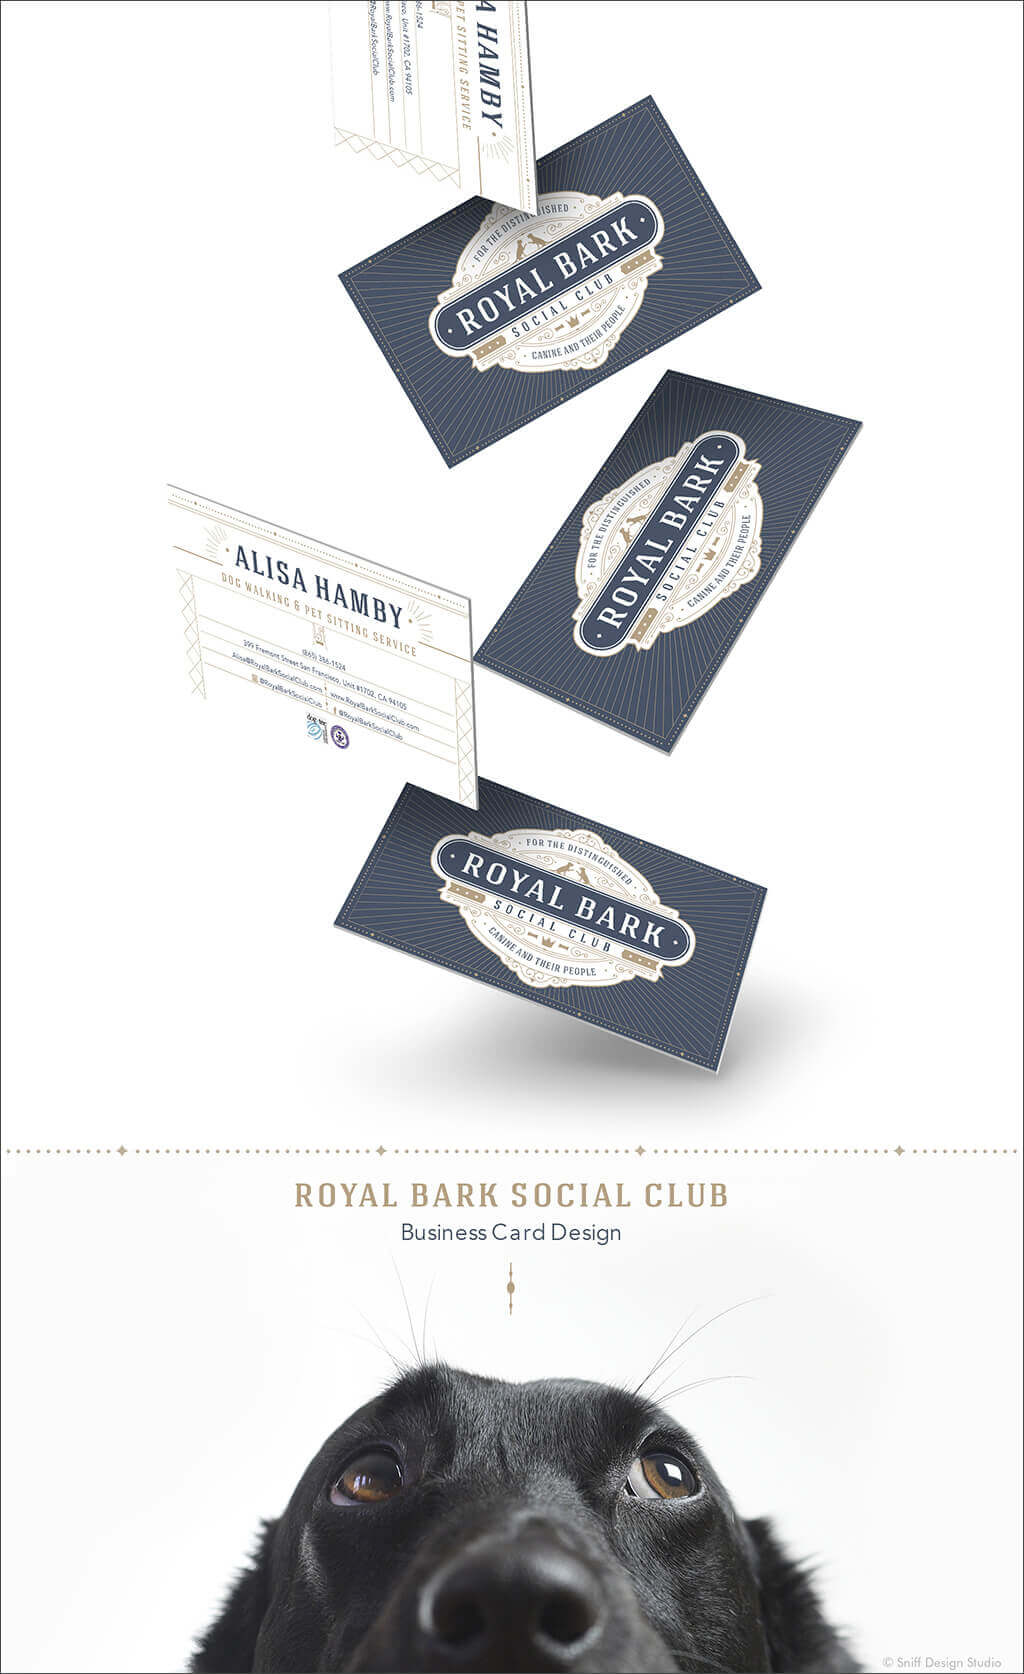 Pet Business Card Design for Royal Bark Social Club by Sniff Design Studio